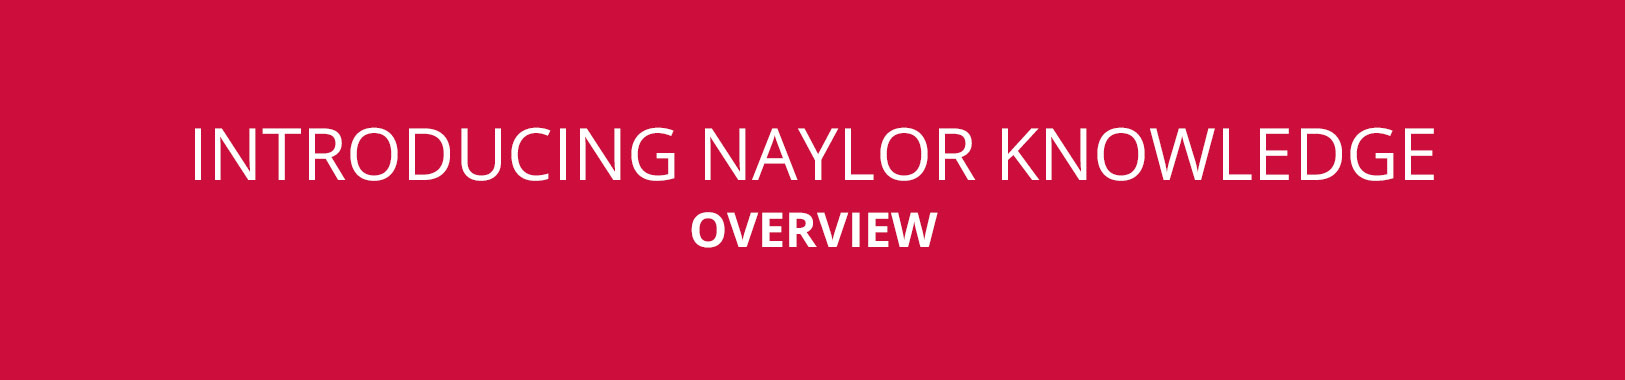 NAYLOR KNOWLEDGE BANNER